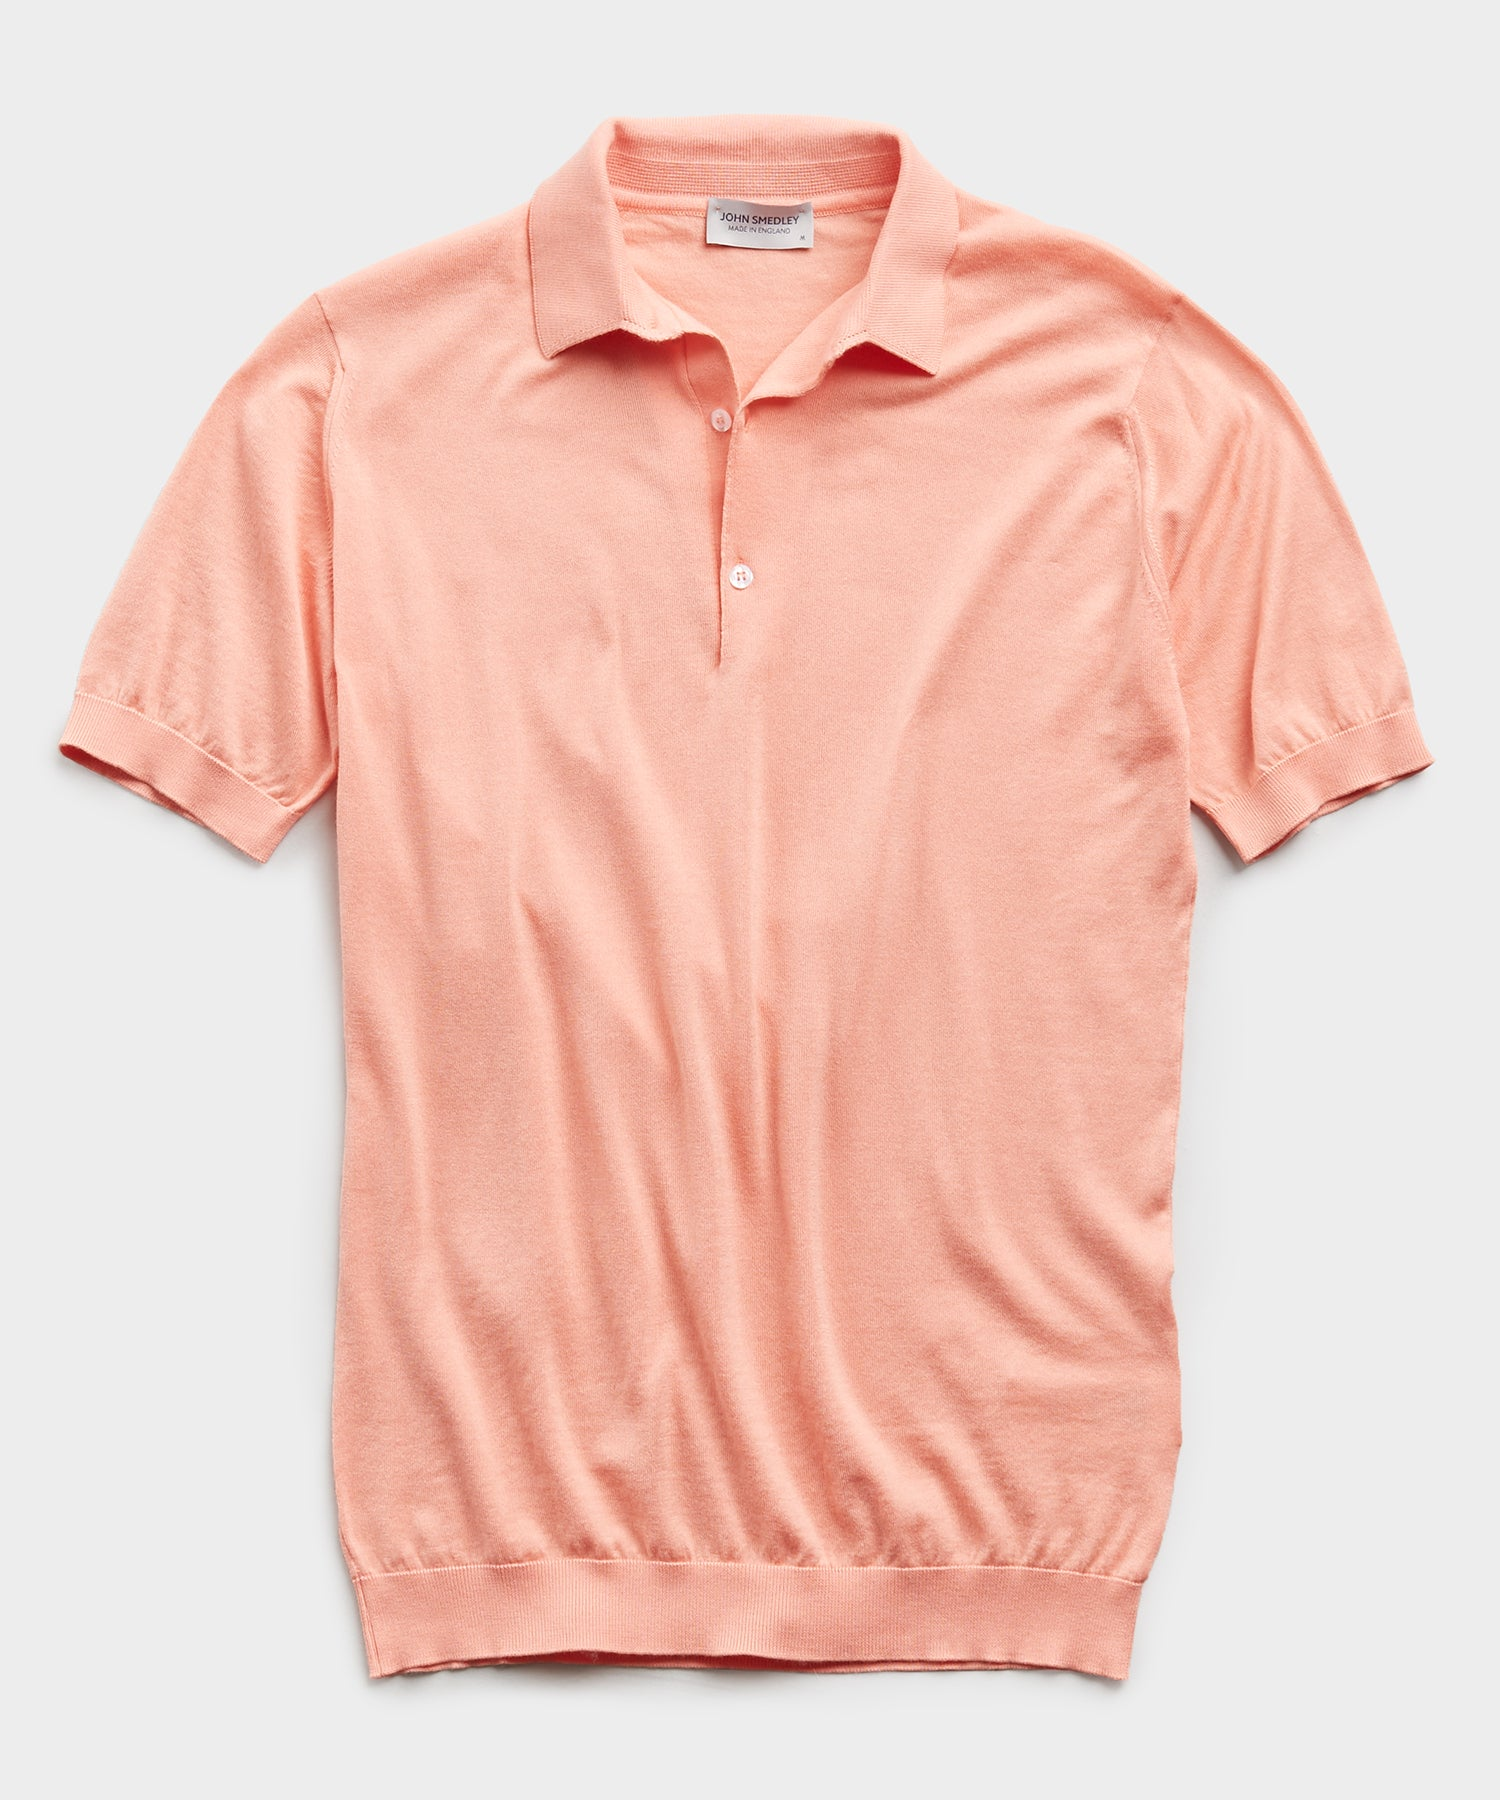 John Smedley Adrian Sea Island Cotton Polo in Canteloupe